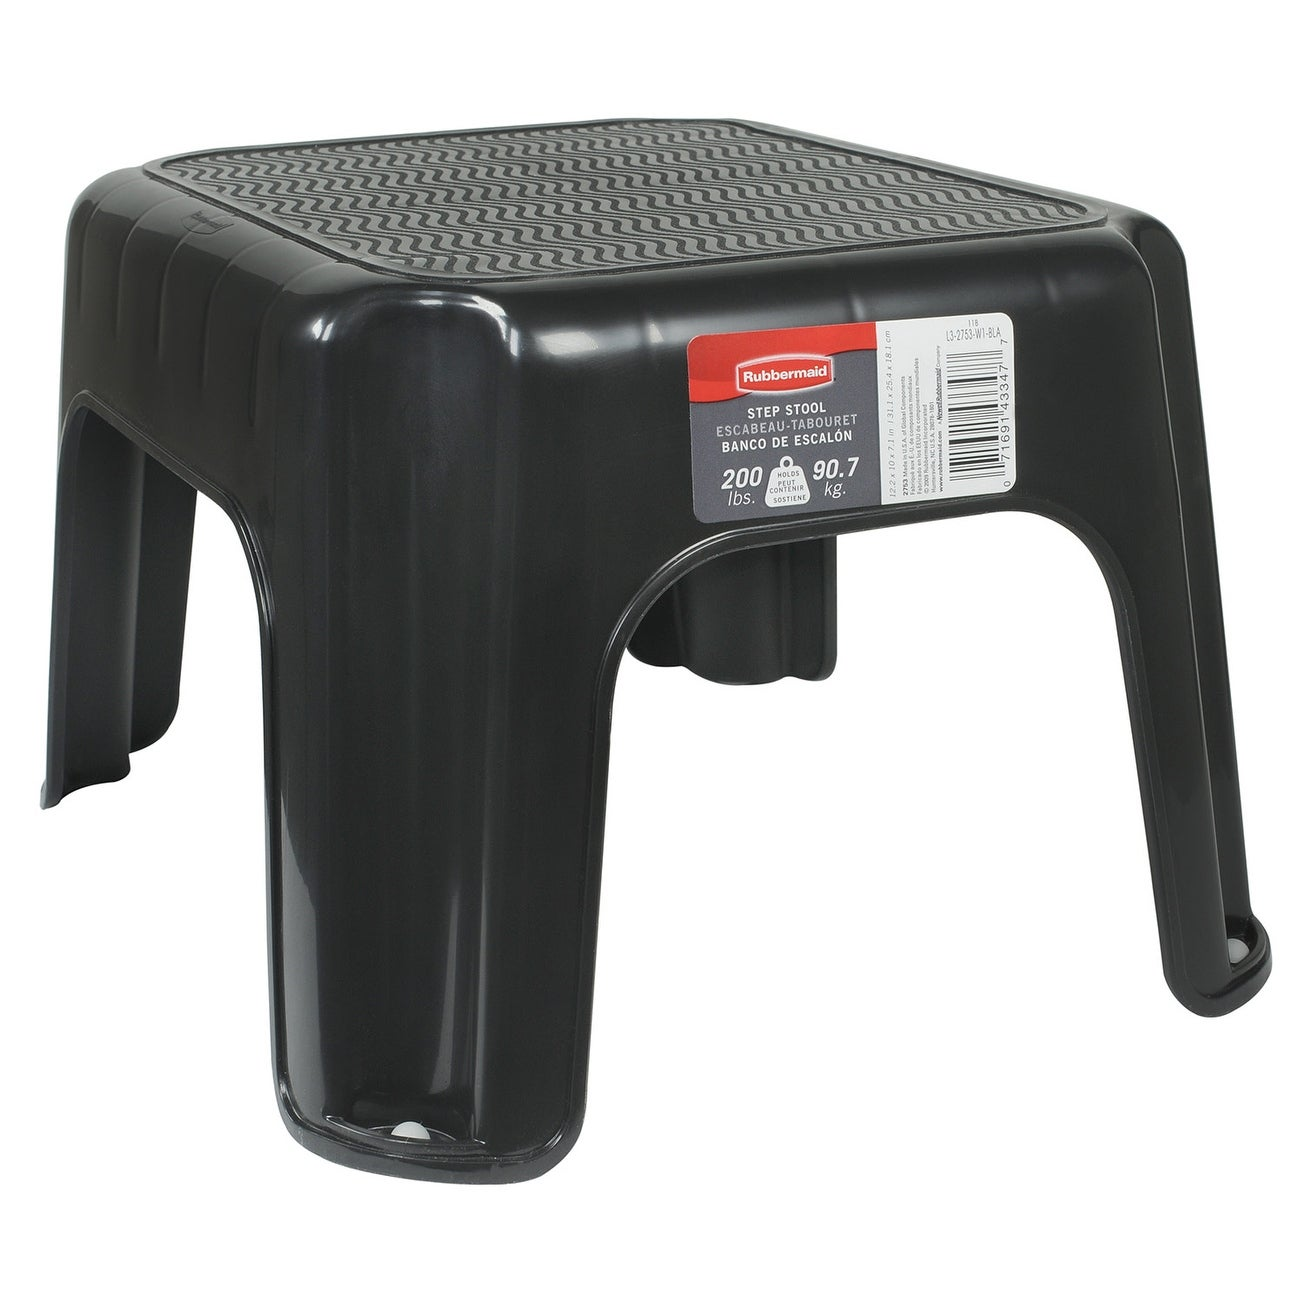 Superb Rubbermaid 1858957 7 12 Tall Plastic Step Stool Black Gamerscity Chair Design For Home Gamerscityorg